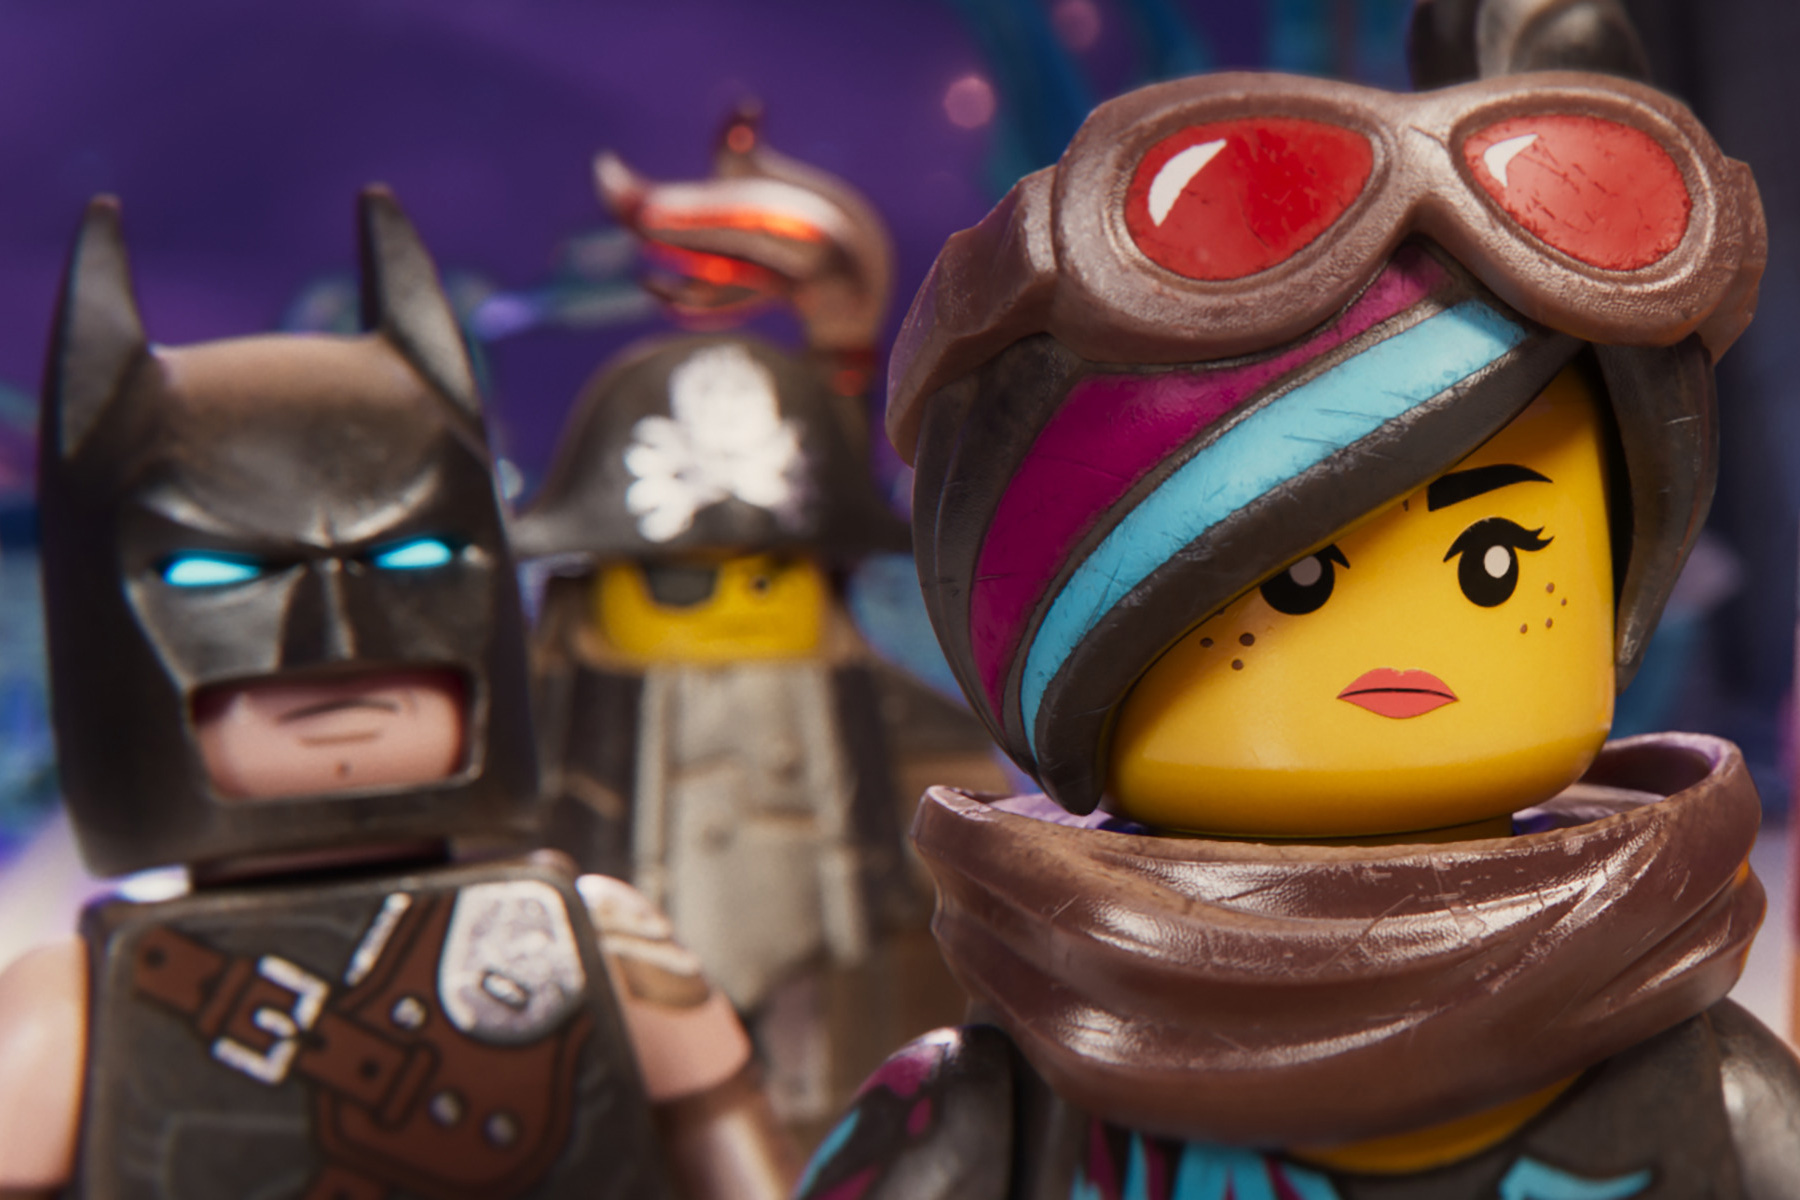 Wyldstyle is a leader of hope in The Lego Movie 2.